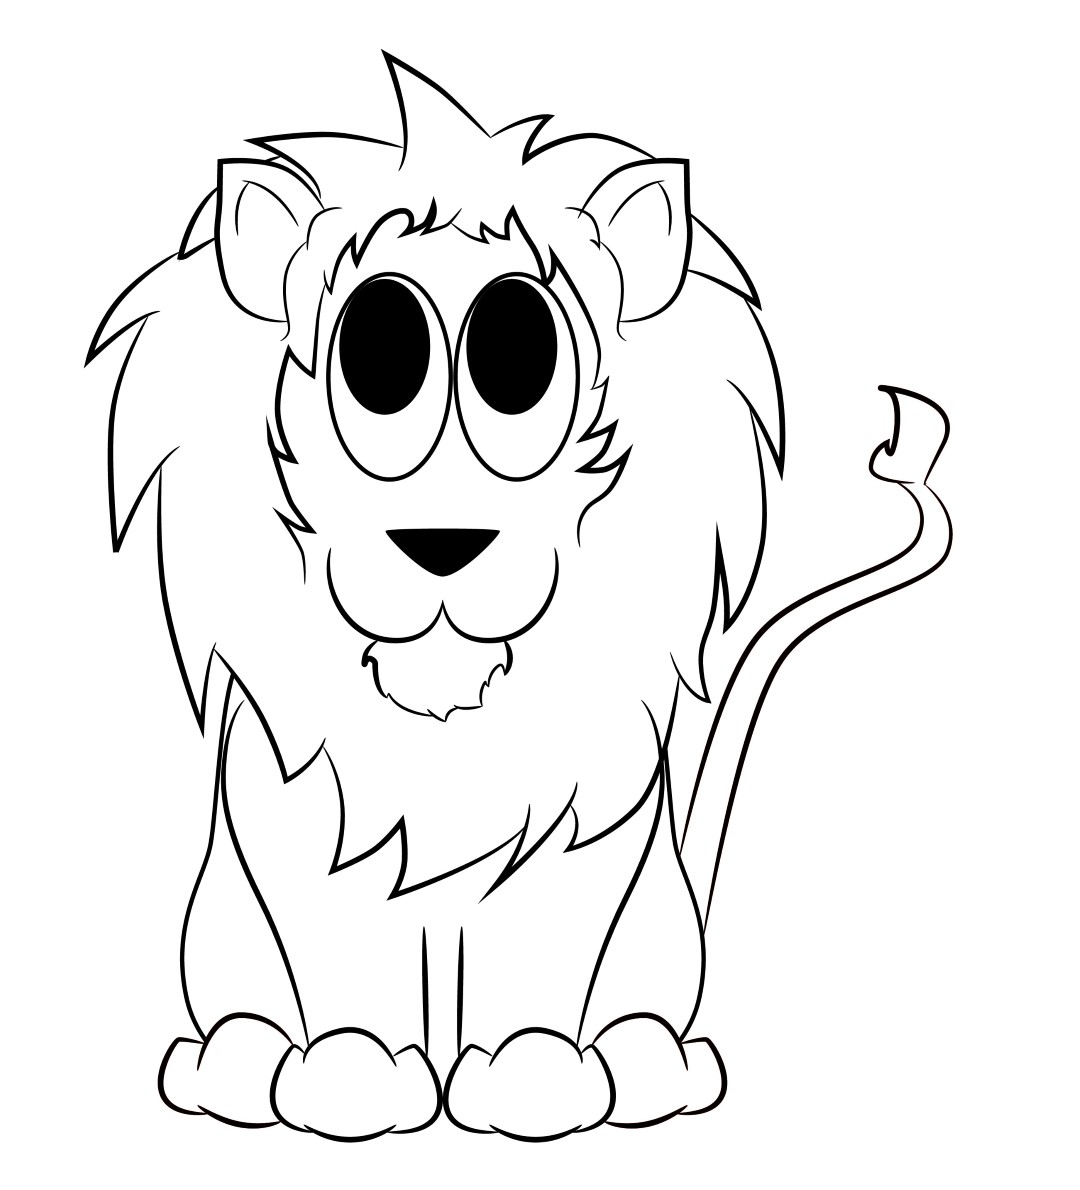 1080x1190 Easy Cartoon Lion Drawings Easy Pencil Sketches Of Cartoon Lion